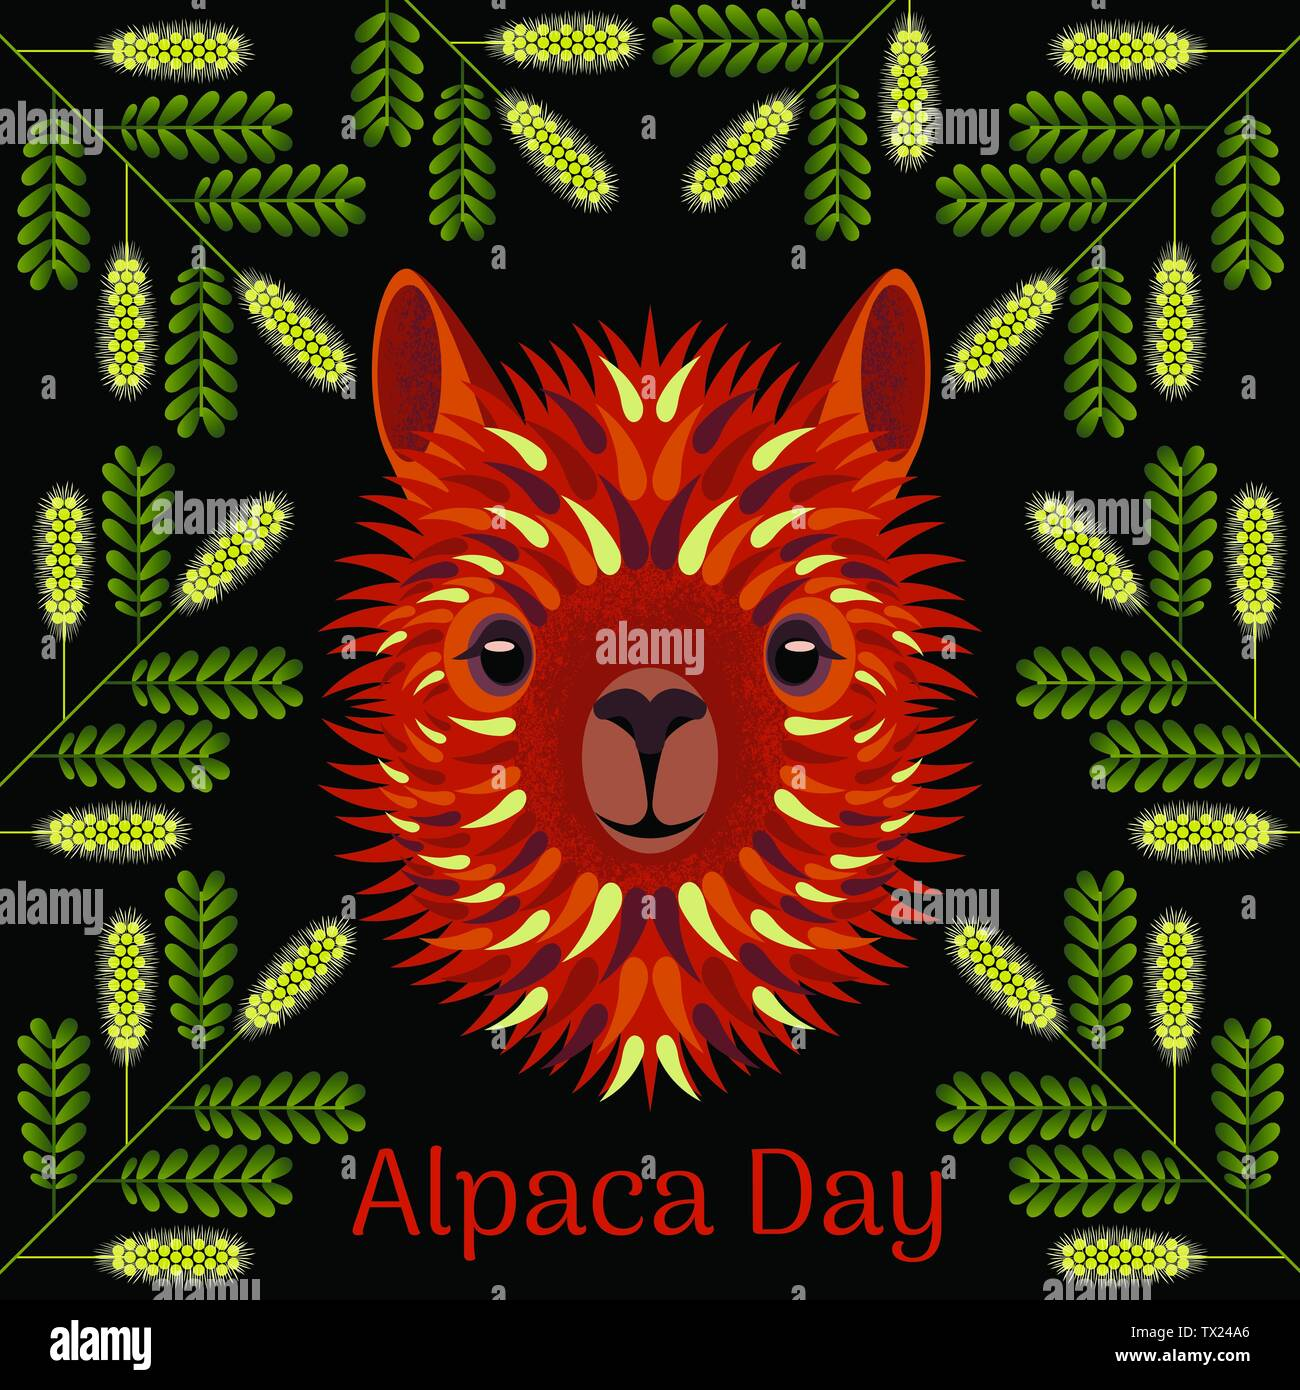 Alpaca Day. National holiday in Peru. Head, face, alpaca portrait. Mesquite twig frame - Stock Vector